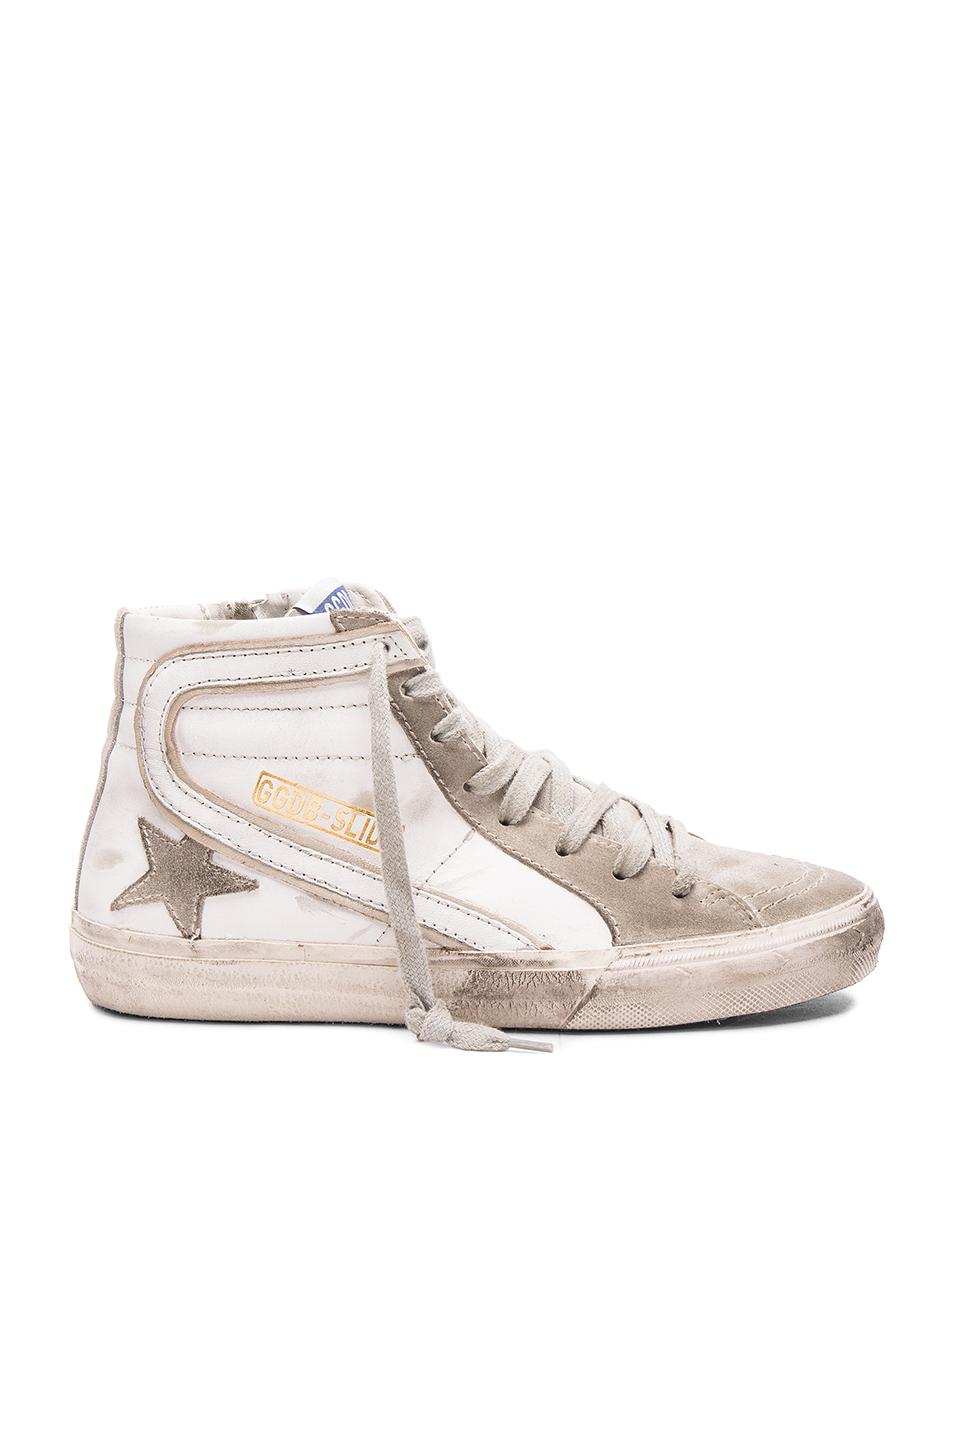 golden goose deluxe brand slide sneakers in white lyst. Black Bedroom Furniture Sets. Home Design Ideas